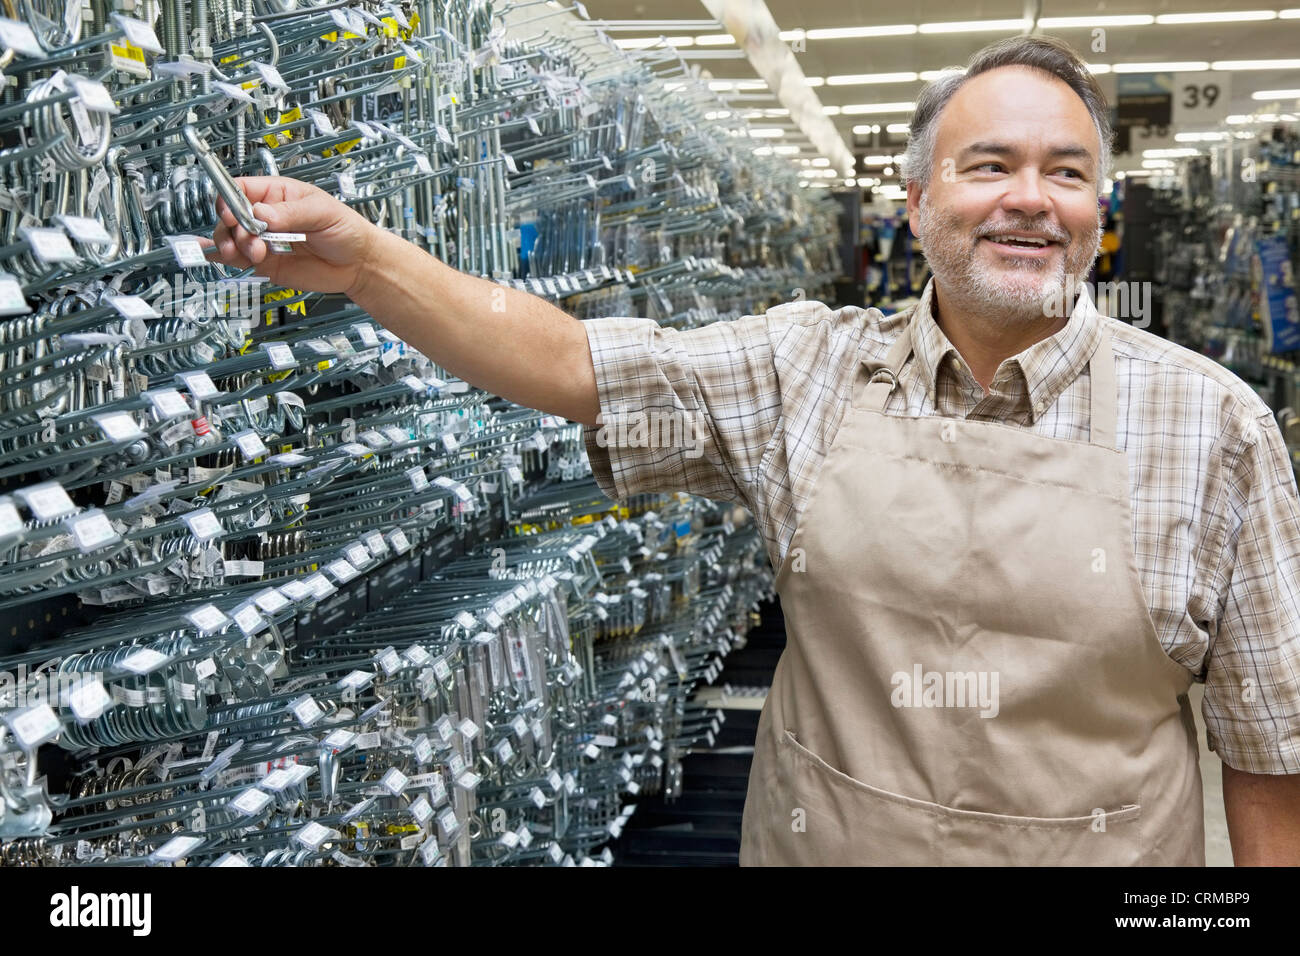 Happy mature salesperson holding metallic equipment while looking away in hardware store - Stock Image